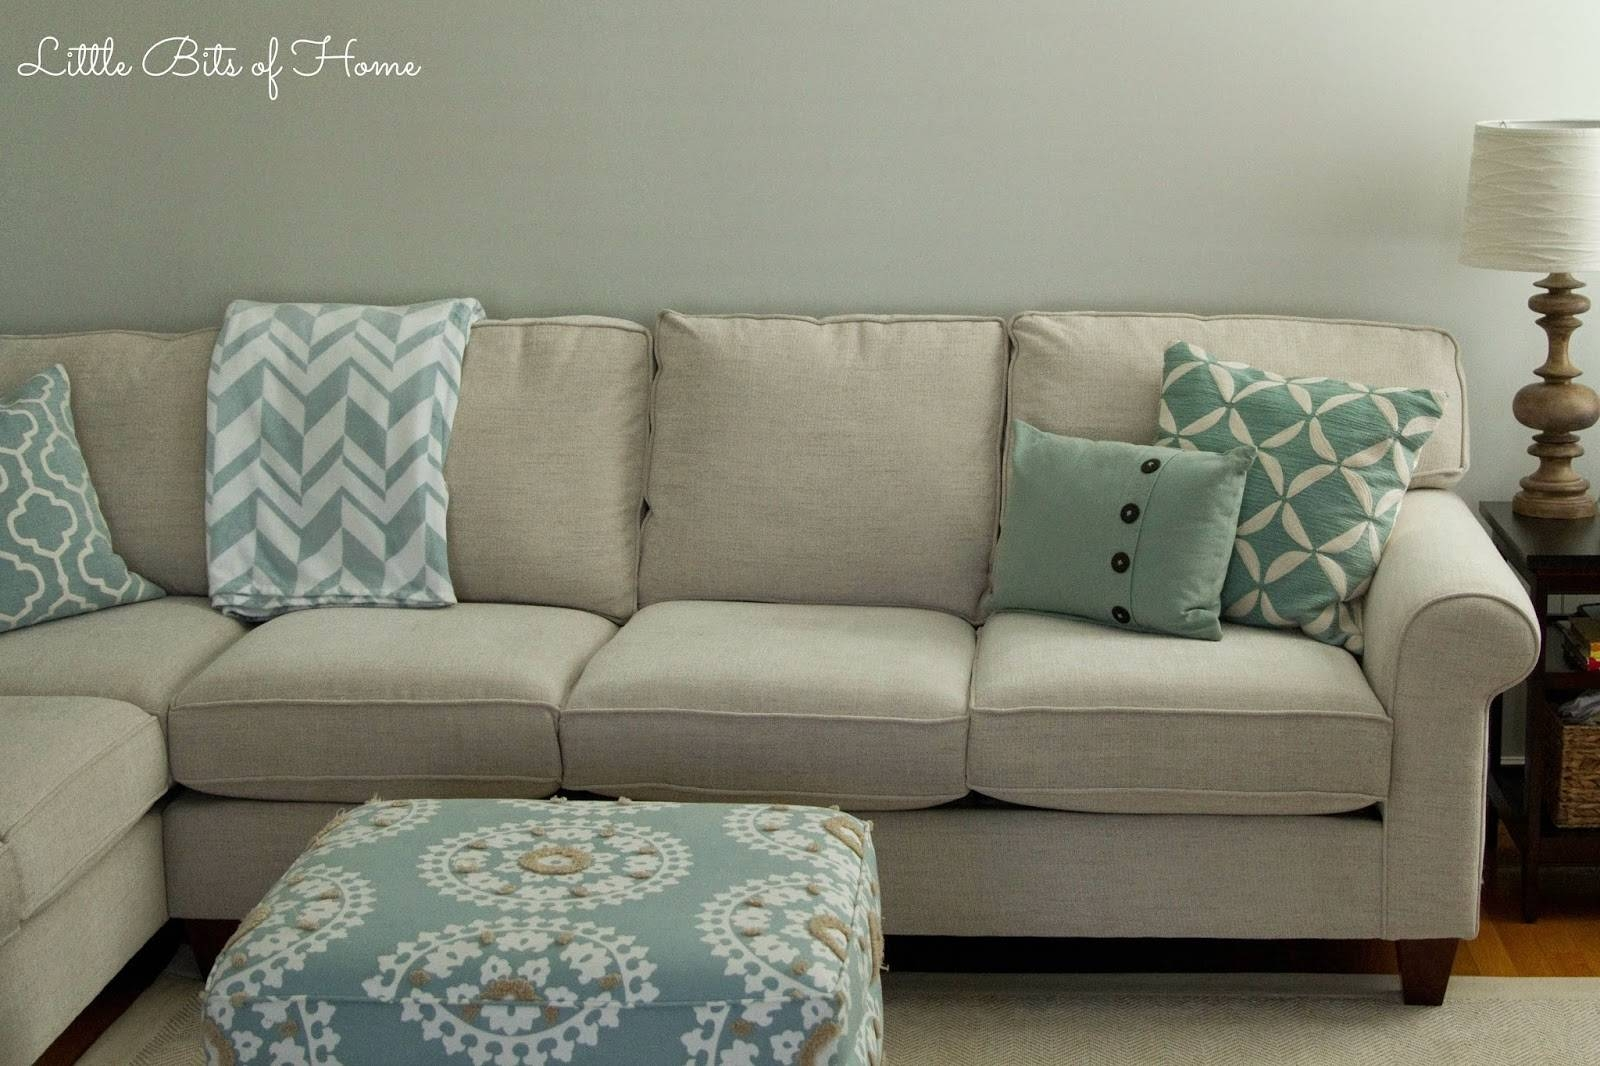 Living Room Makeover: Couch Redo Regarding Havertys Amalfi Sofas (View 3 of 15)